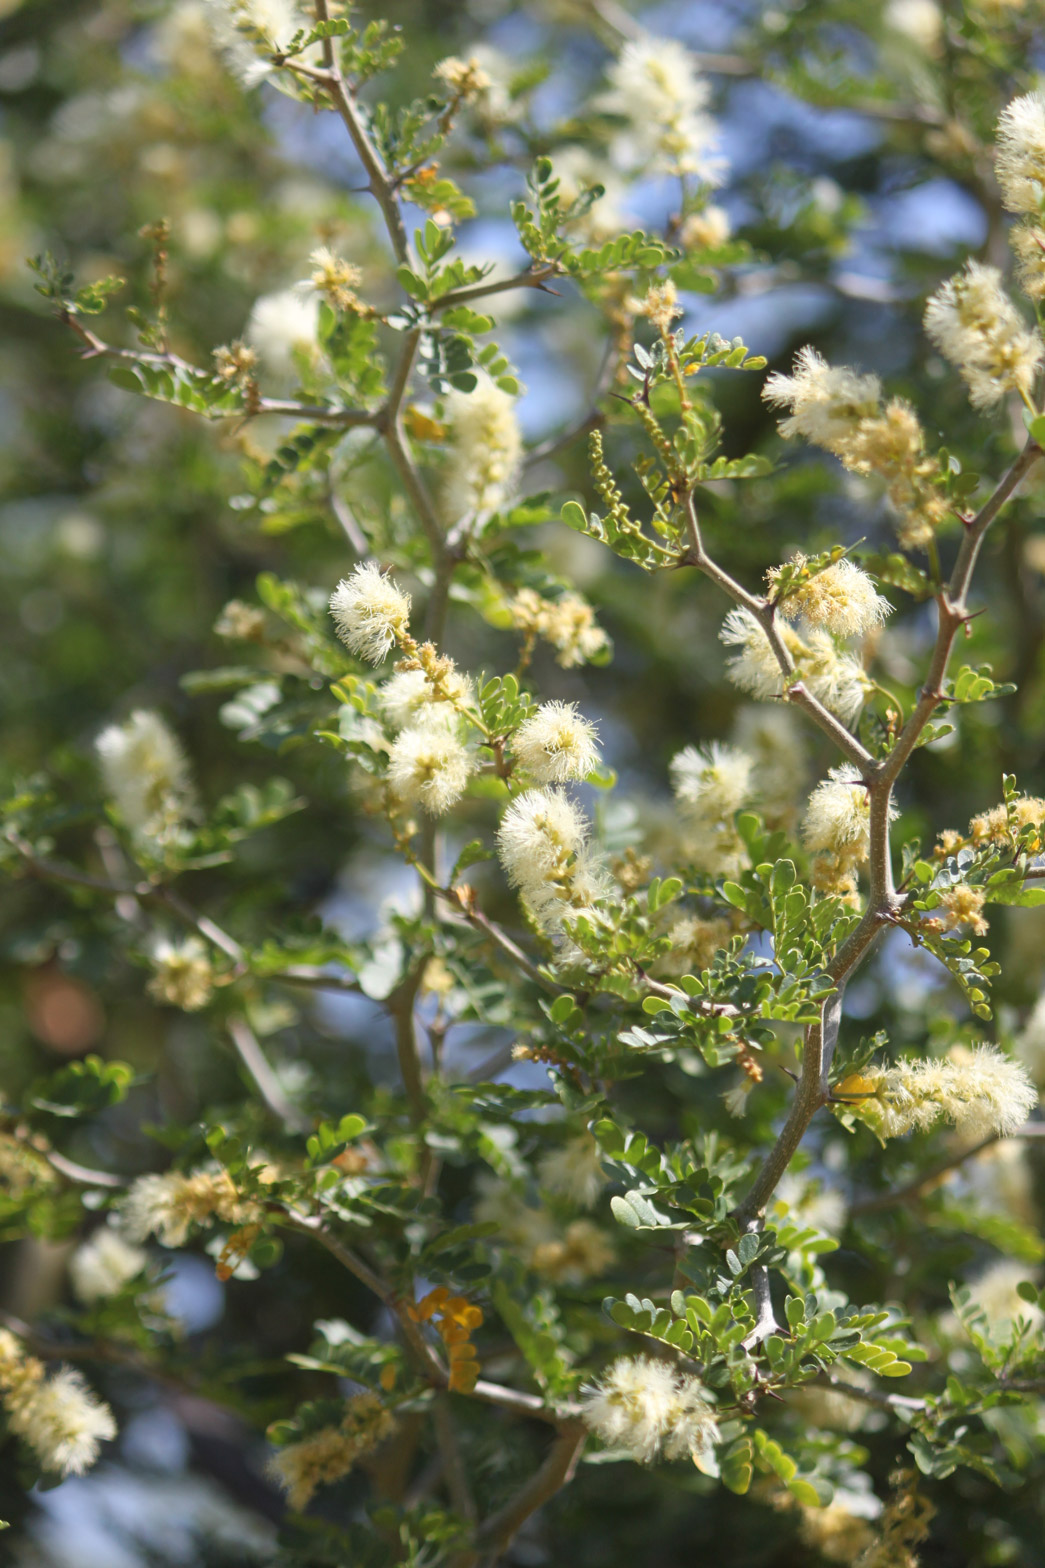 A close-up of the white flowers of the Texas Ebony.